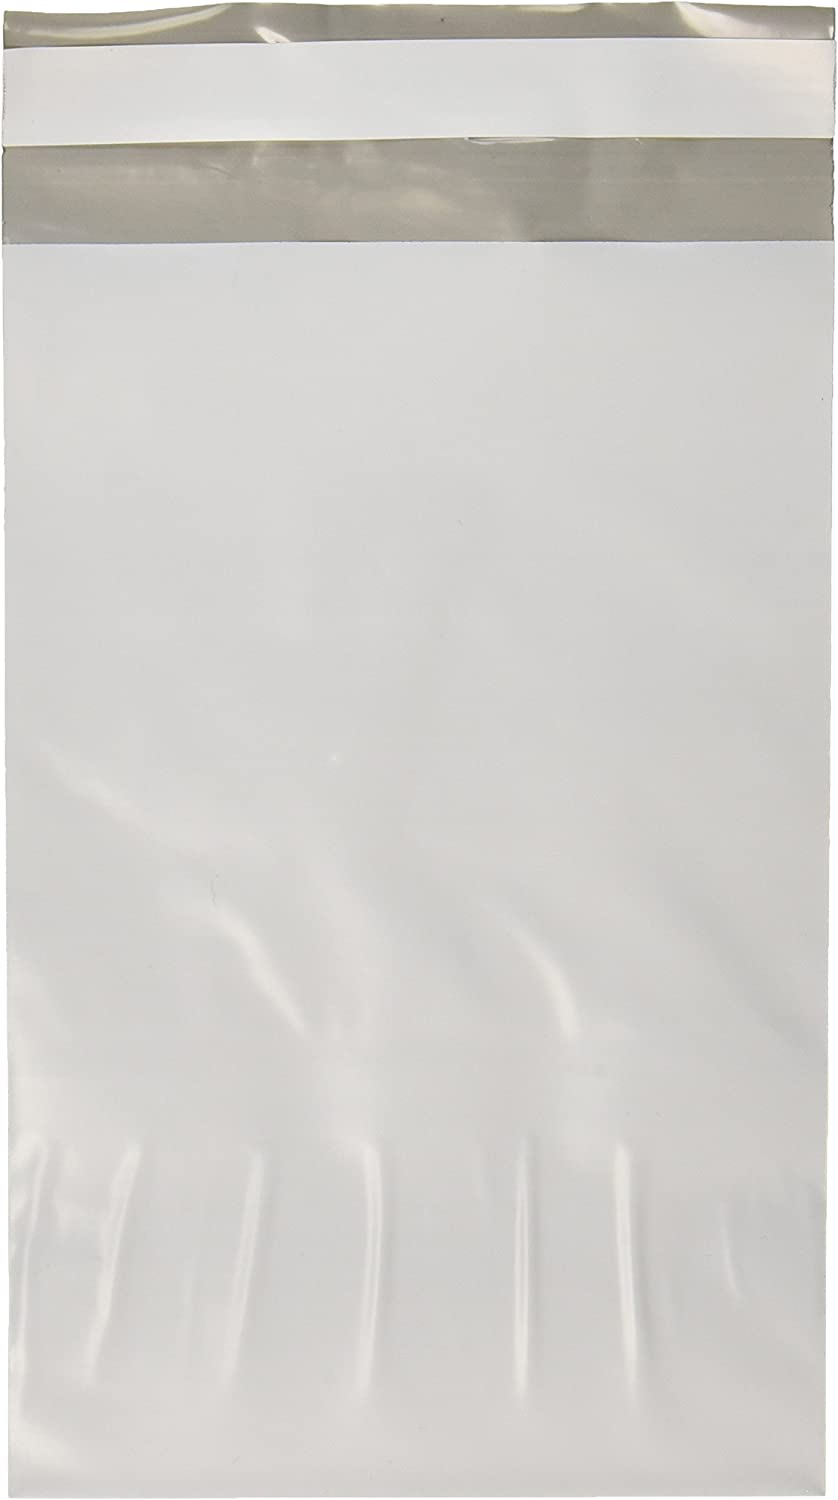 9527 Product Poly Mailers 6x9 Envelopes Shipping Bags Self Sealing 100 Bags,White